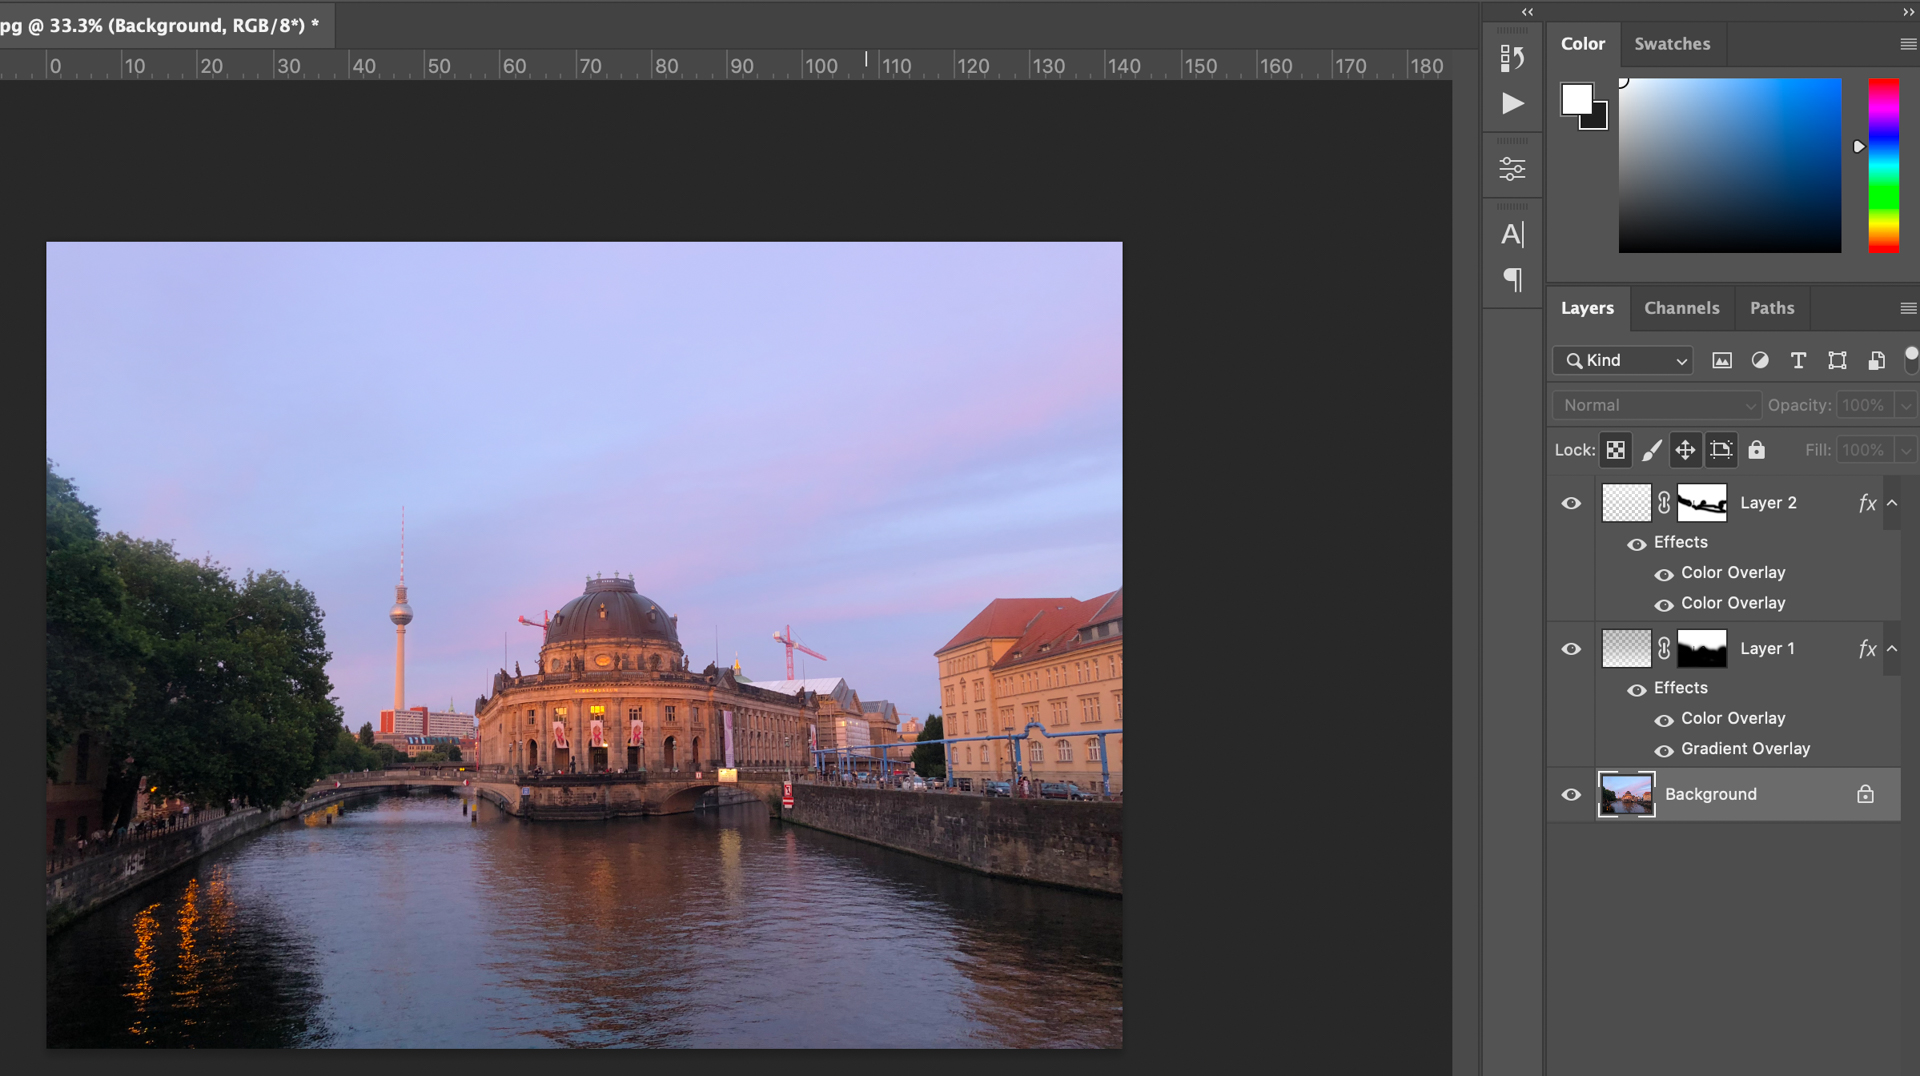 An image with Photoshop layers